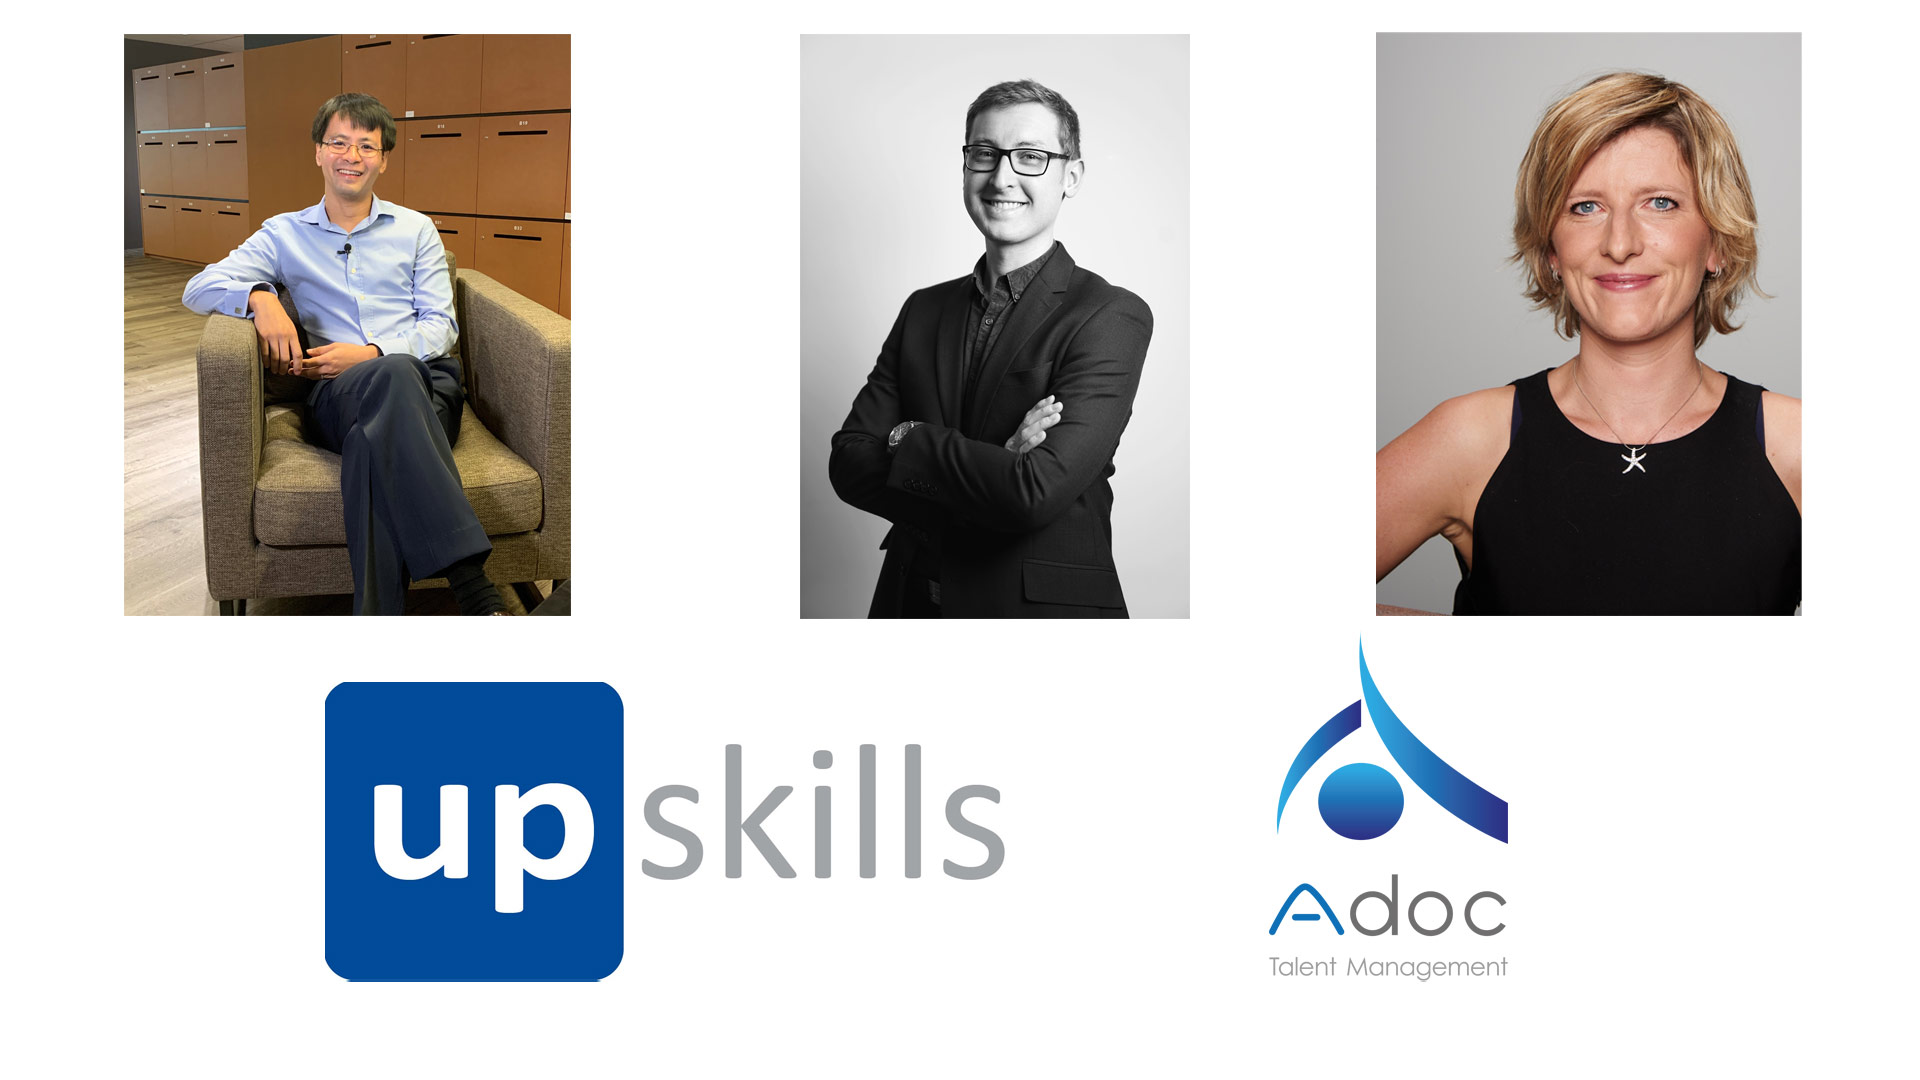 Upskills & Adoc Talent Management